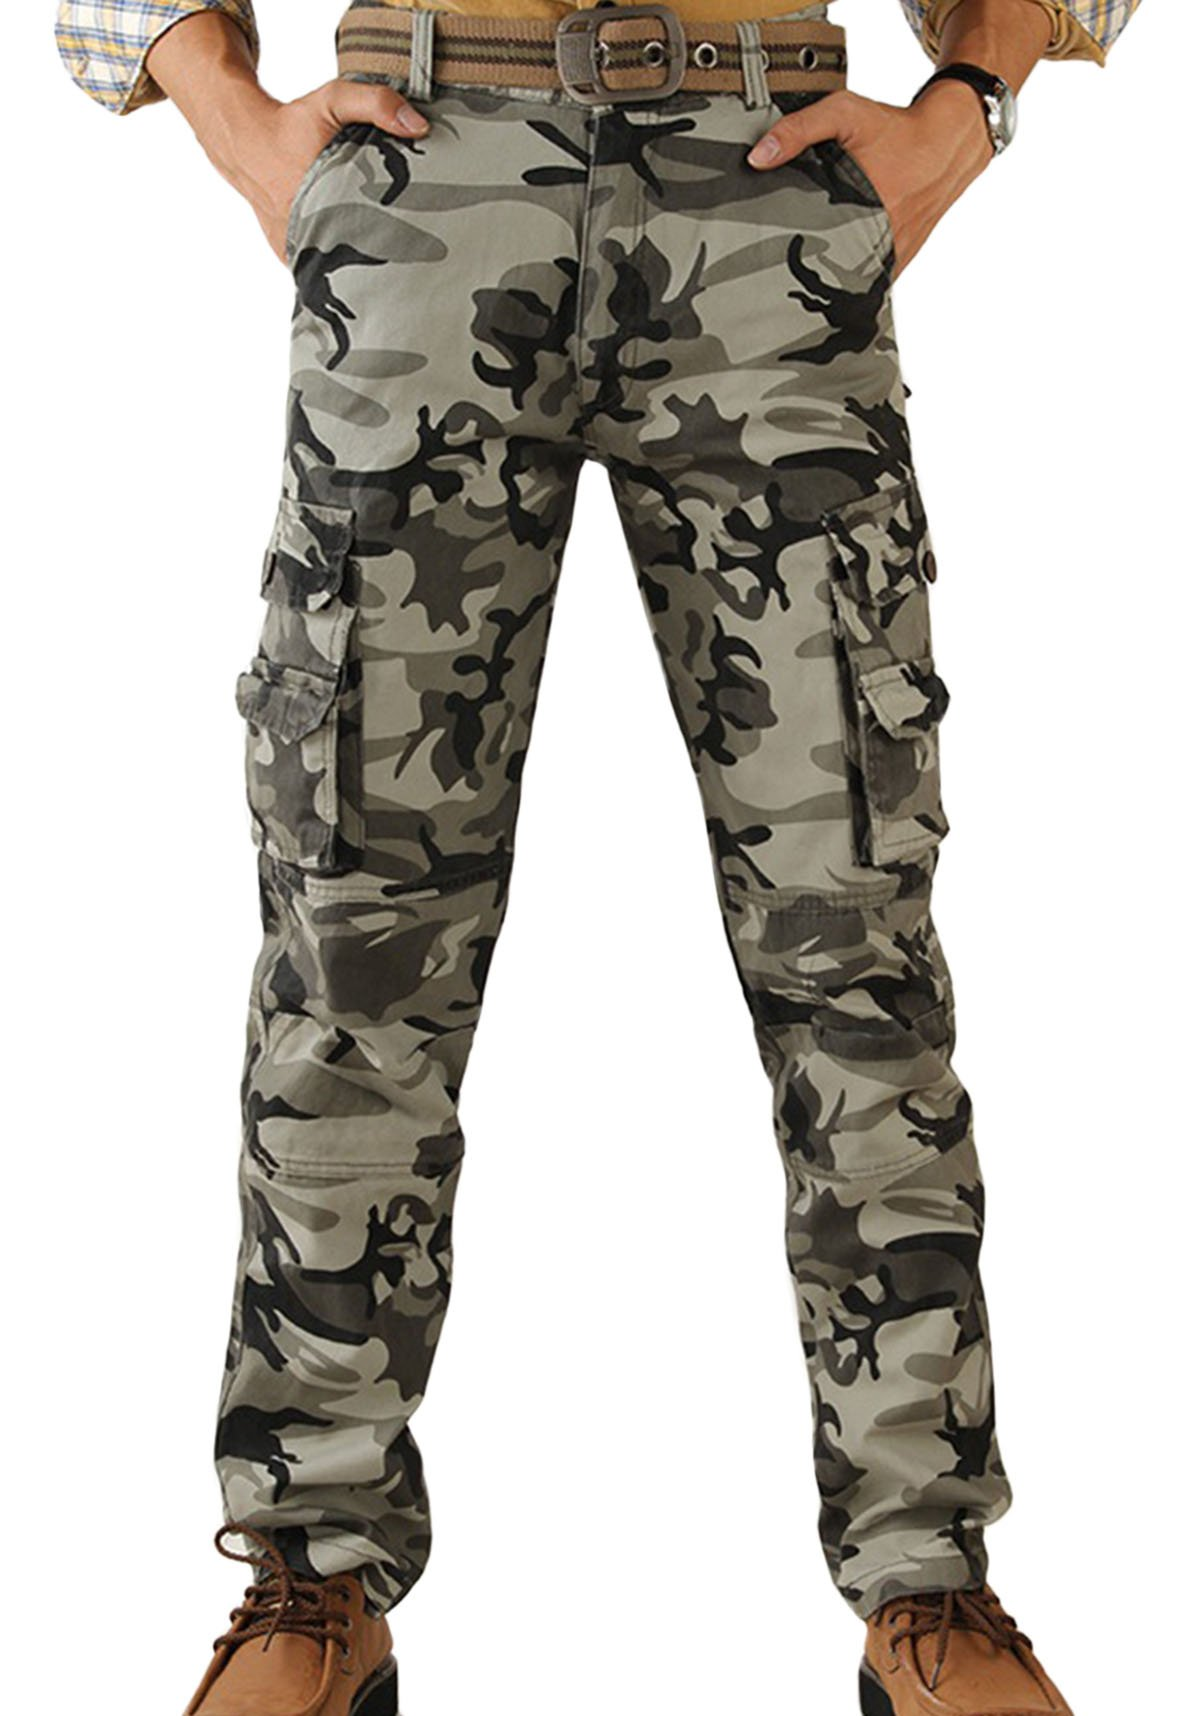 Panegy Men's Camouflage Army Combat Wild Tactical Work Wear Cargo Pants Camping Long Trousers Camo 36